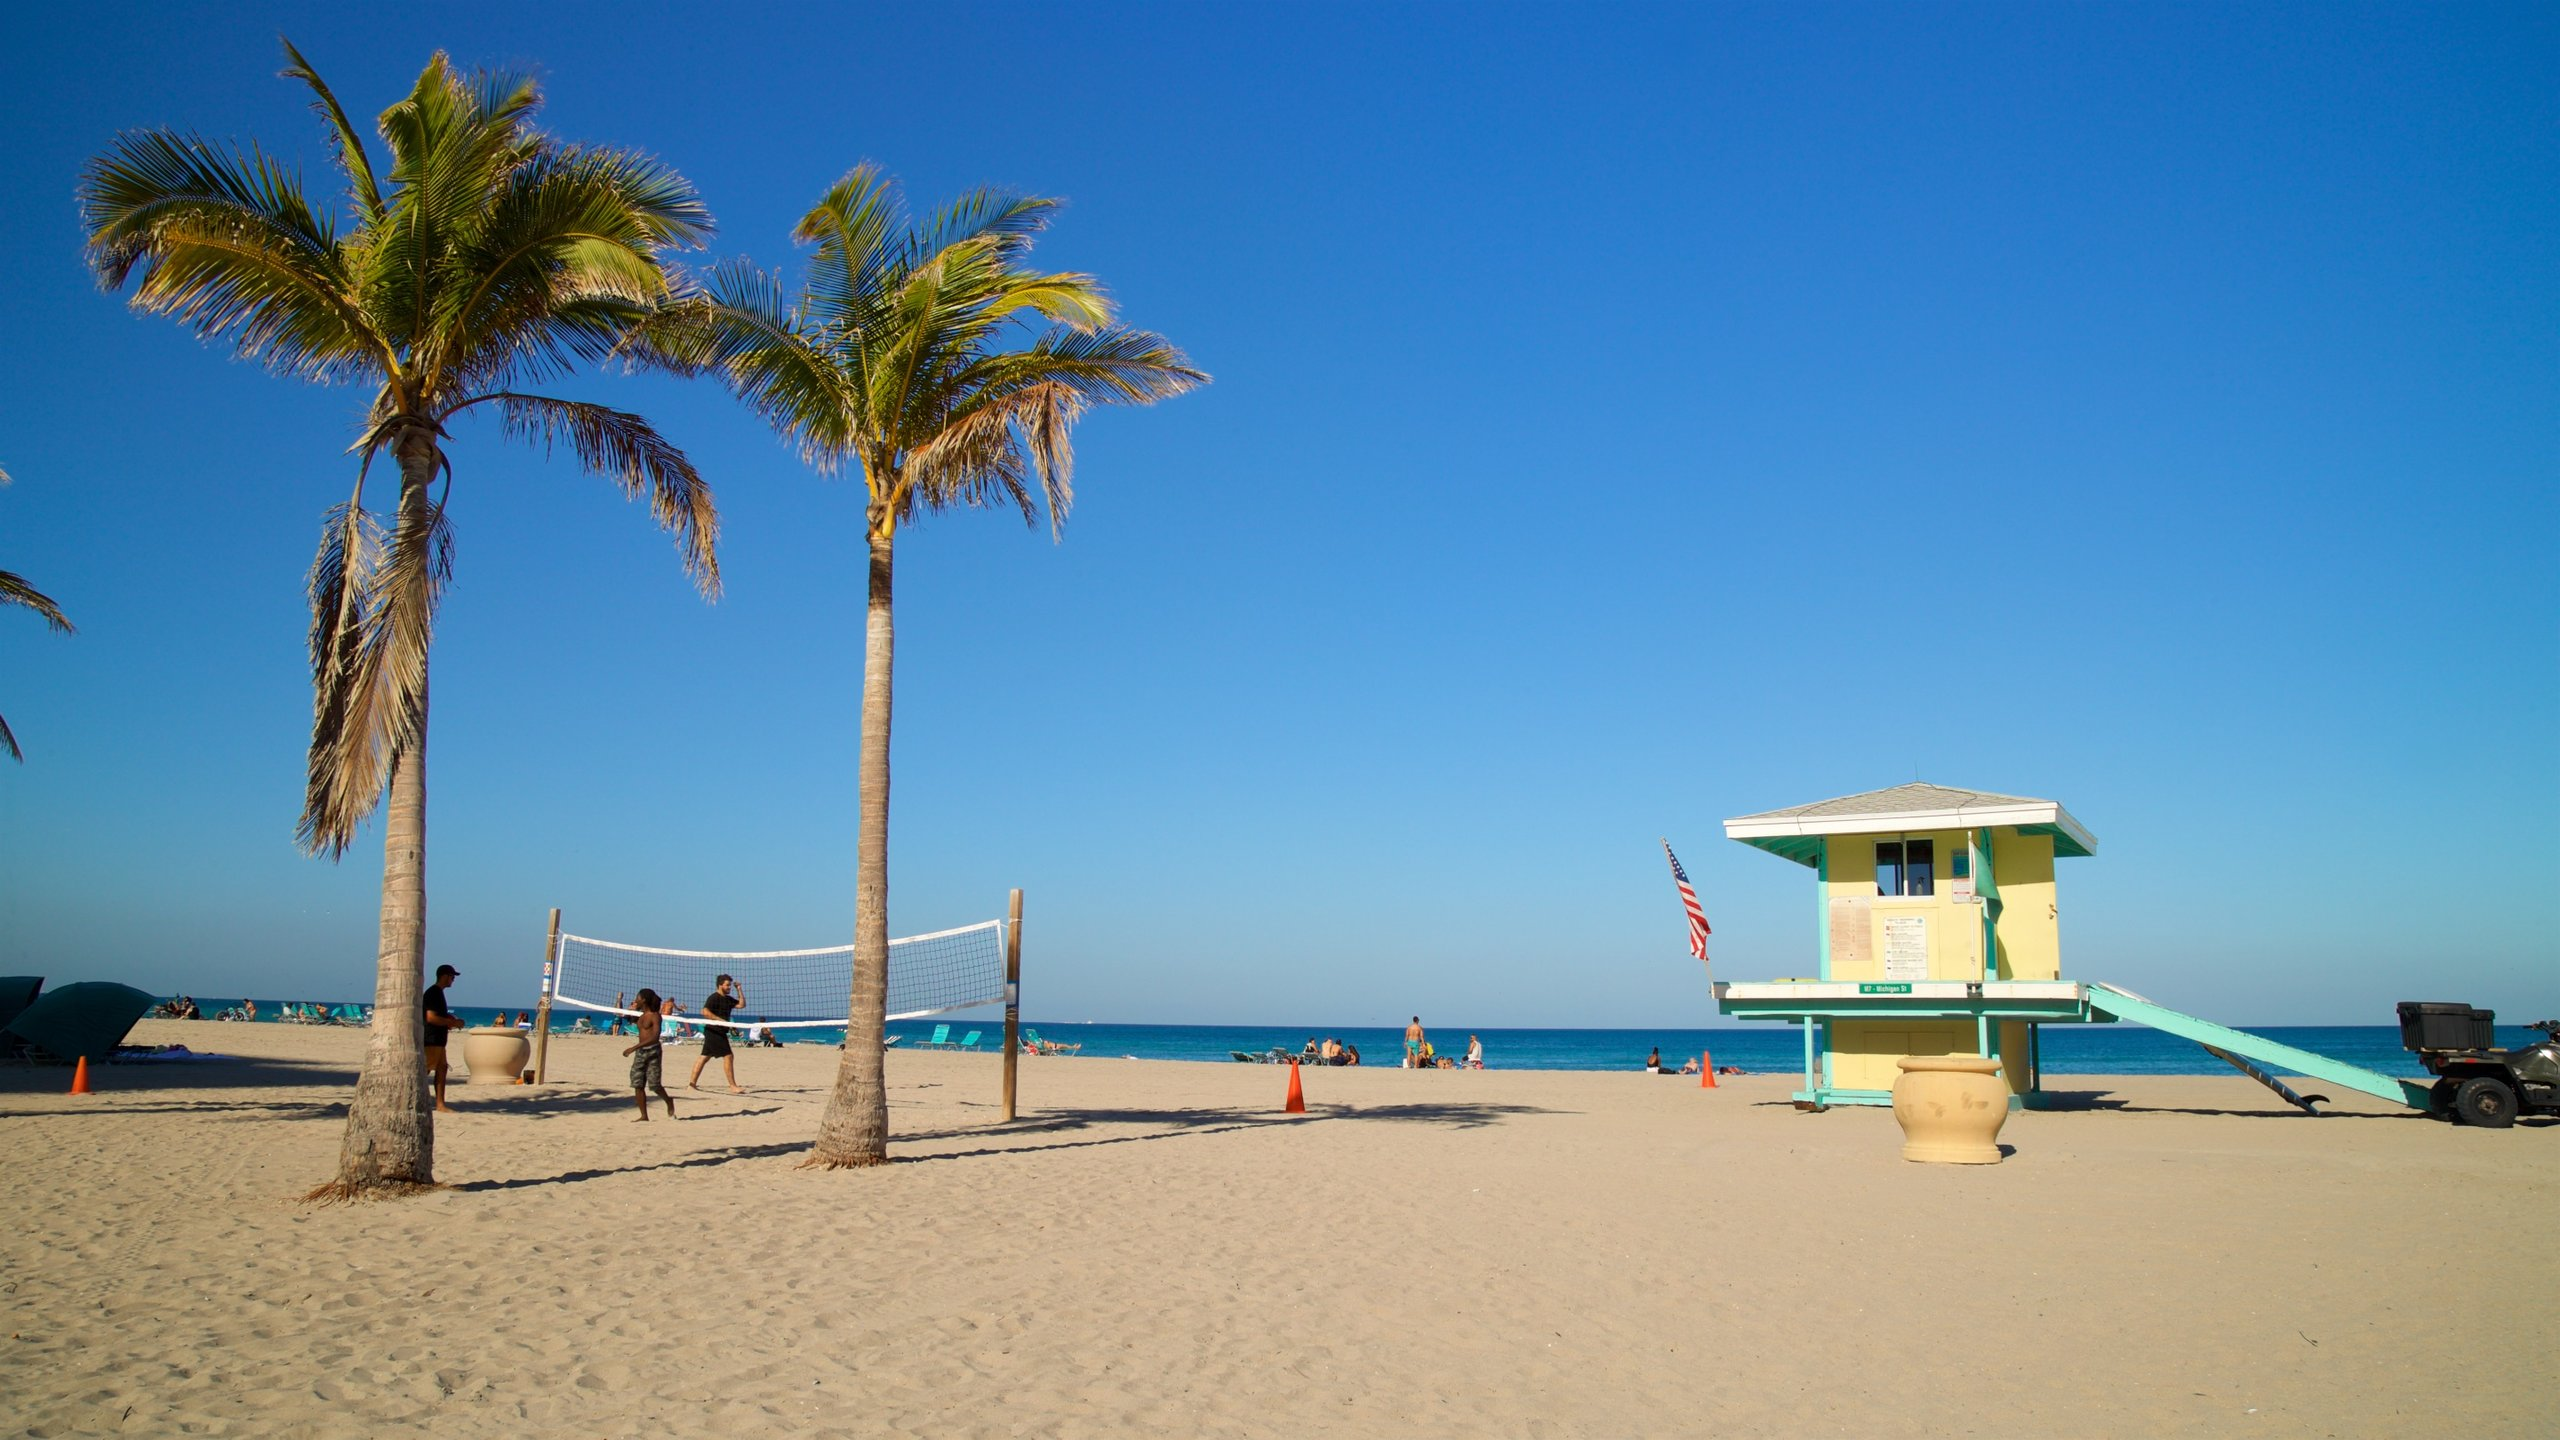 10 Best Hotels Closest to Hollywood Beach in Fort Lauderdale for 2560x1440